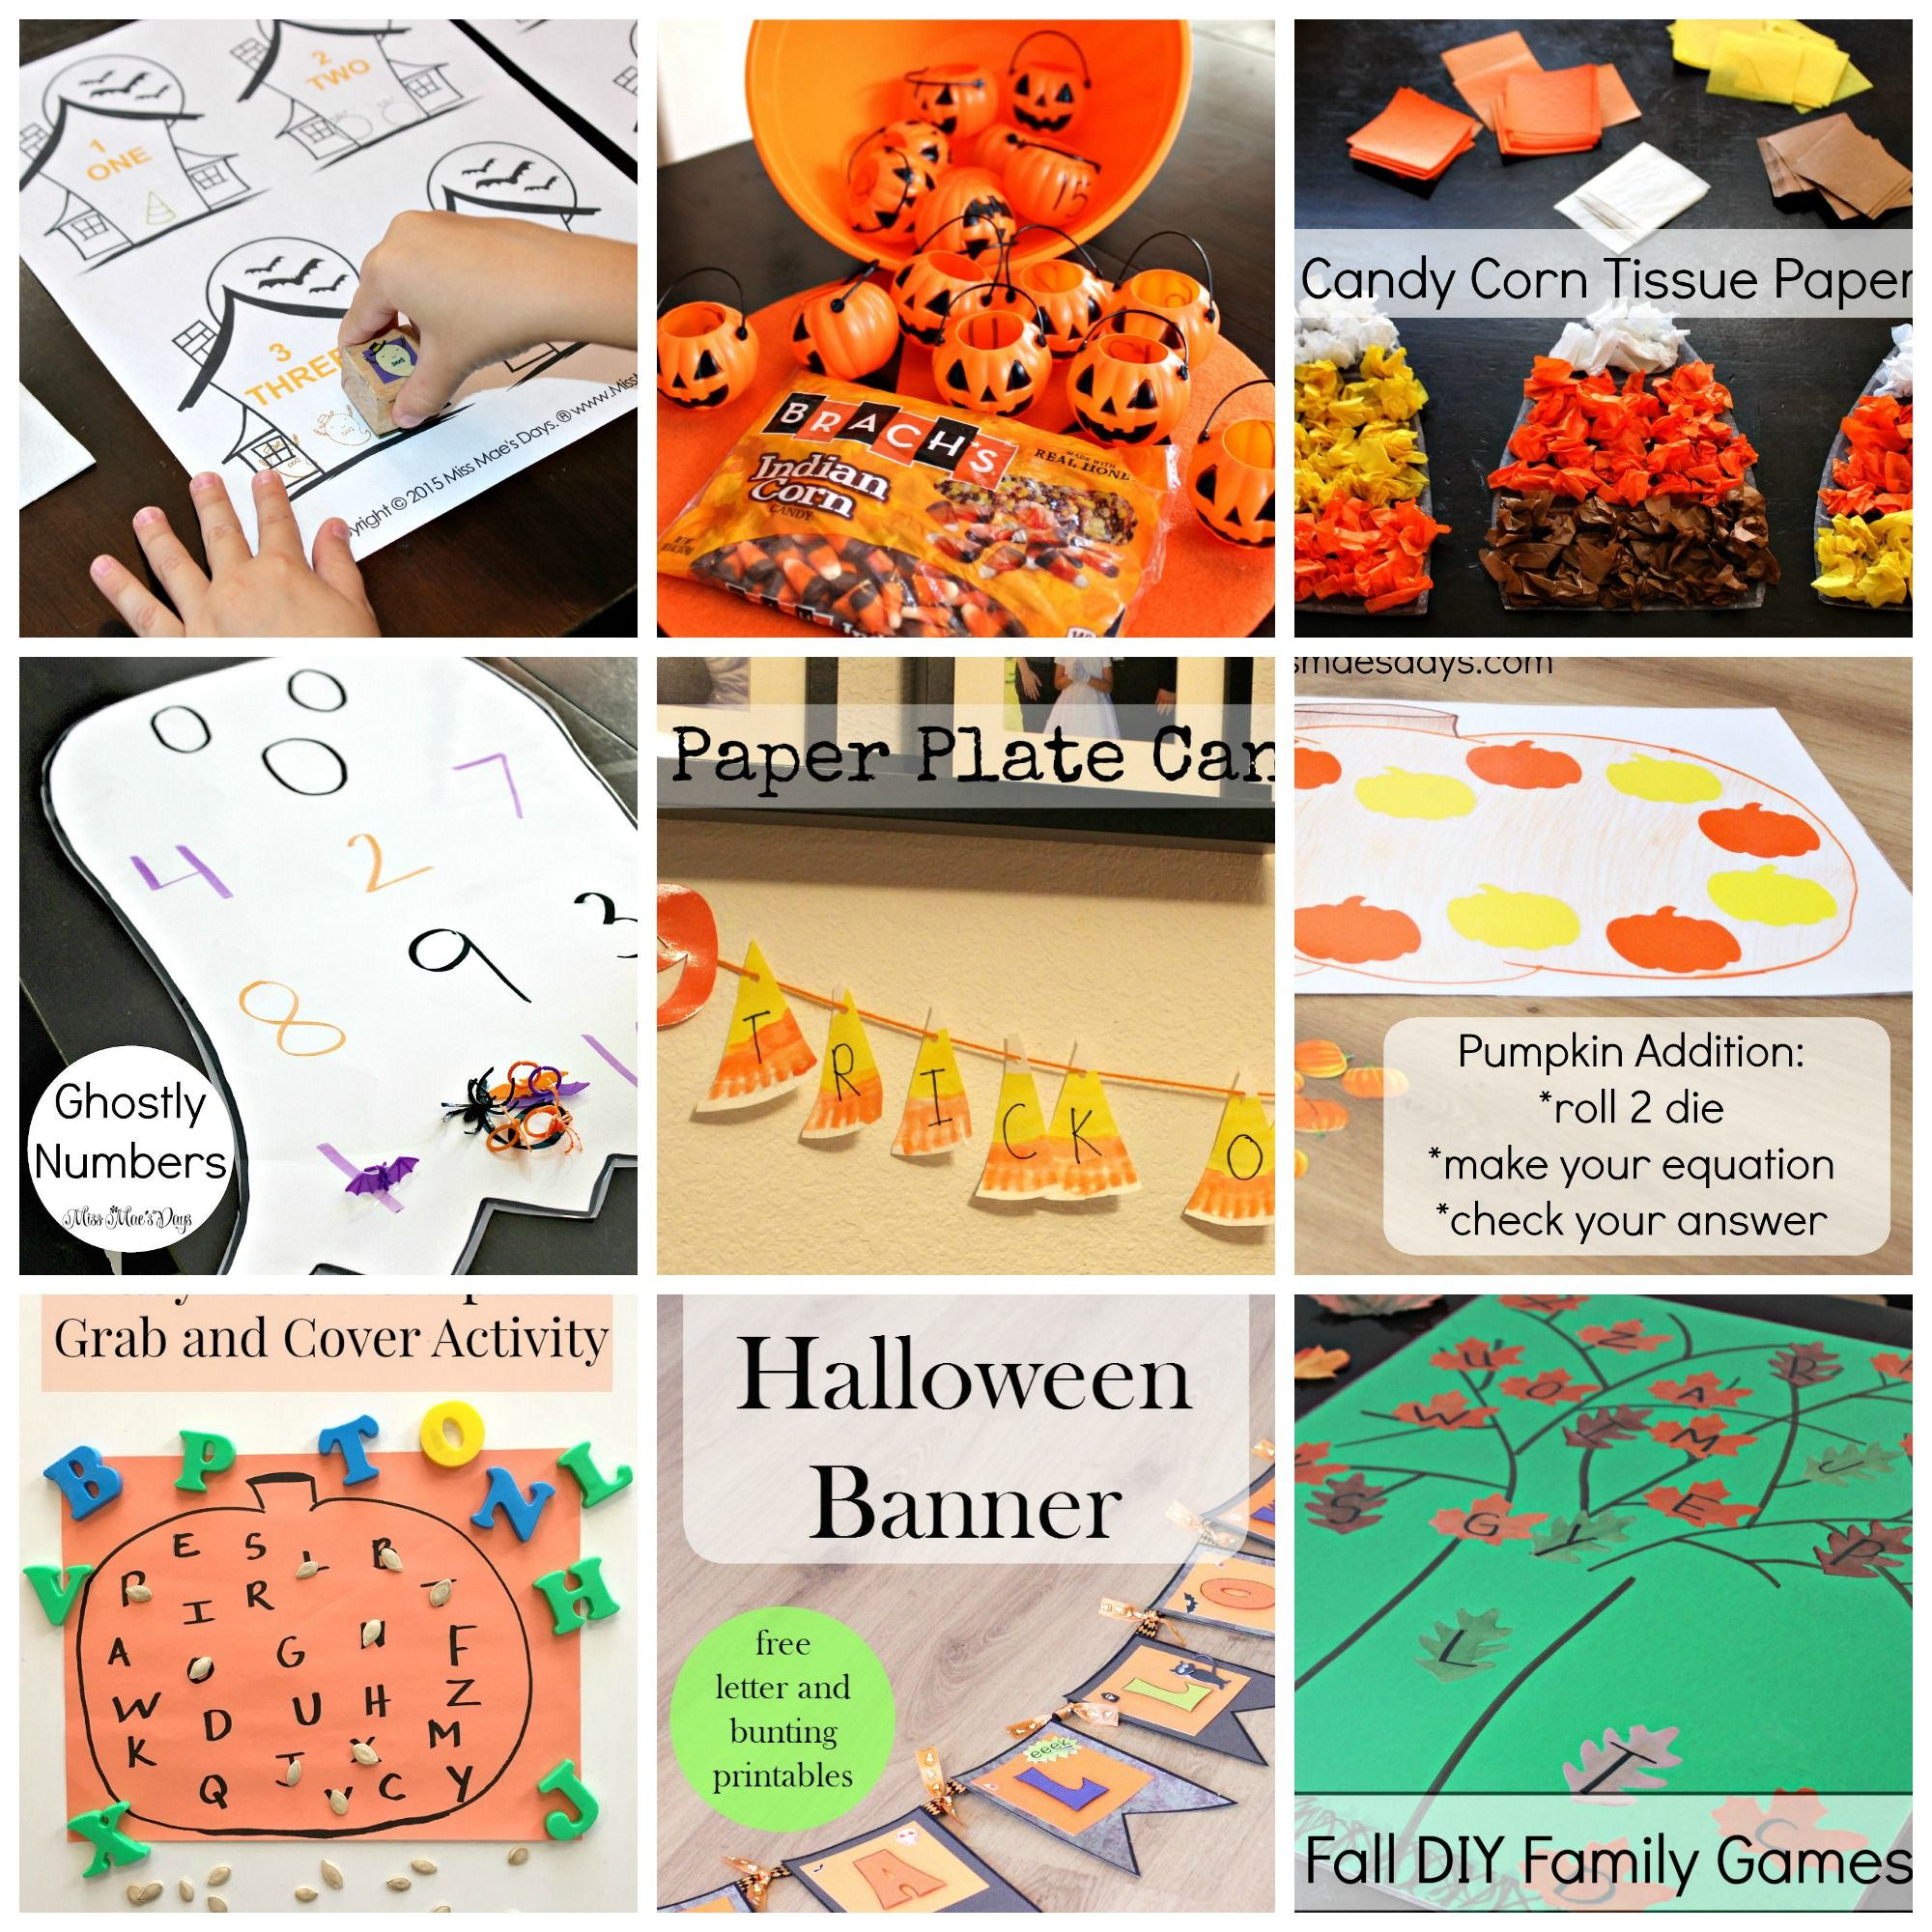 Diy halloween ghost3 - All Things Fall And Halloween Grab Freebies And Tutorial Ideas For Crafting Games And